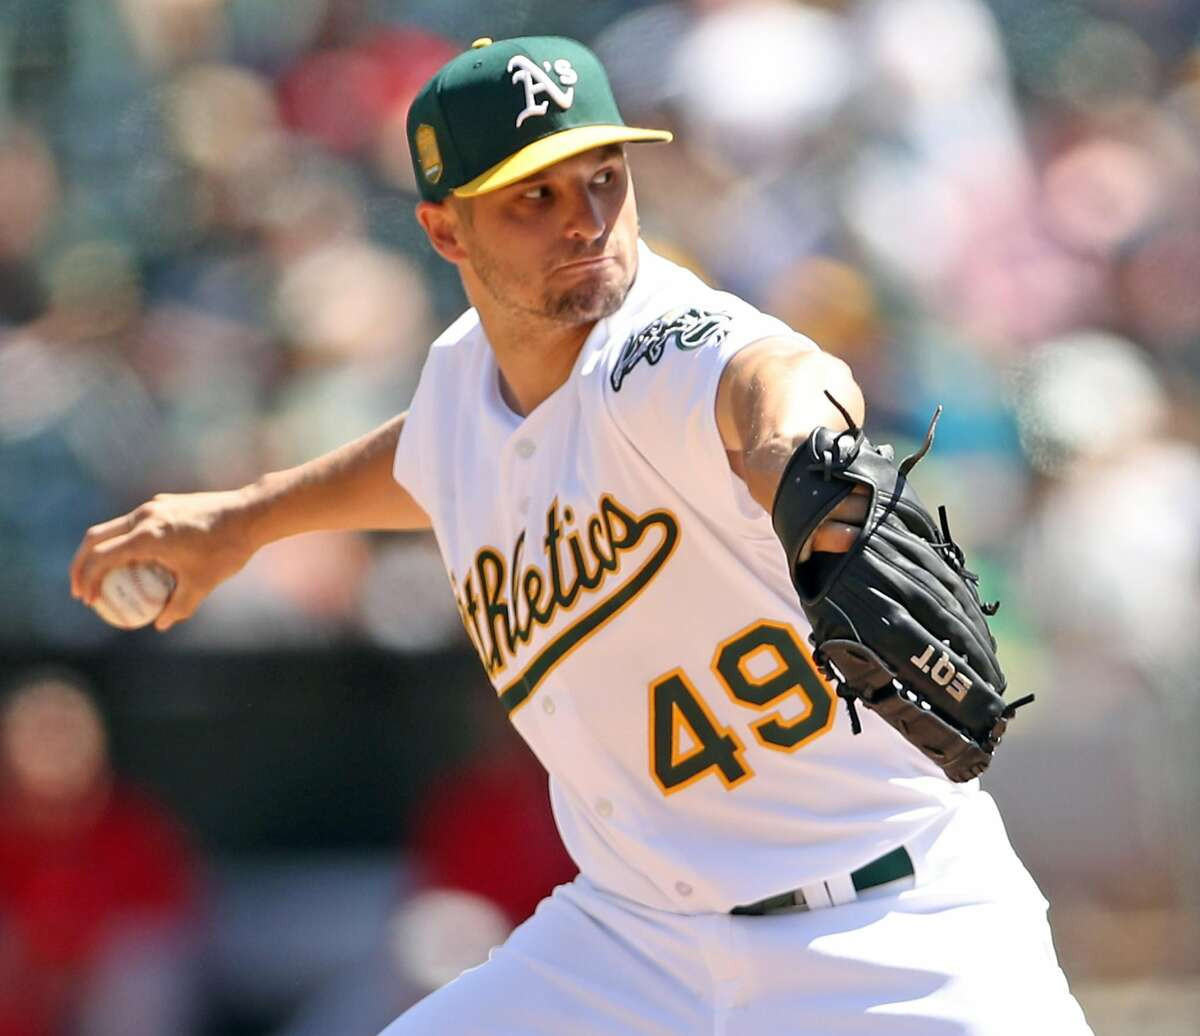 Oakland Athletics' Kendall Graven pitches in 2nd inning against Los Angeles Angels during MLB game at Oakland Coliseum in Oakland, Calif., on Thursday, March 29, 2018.